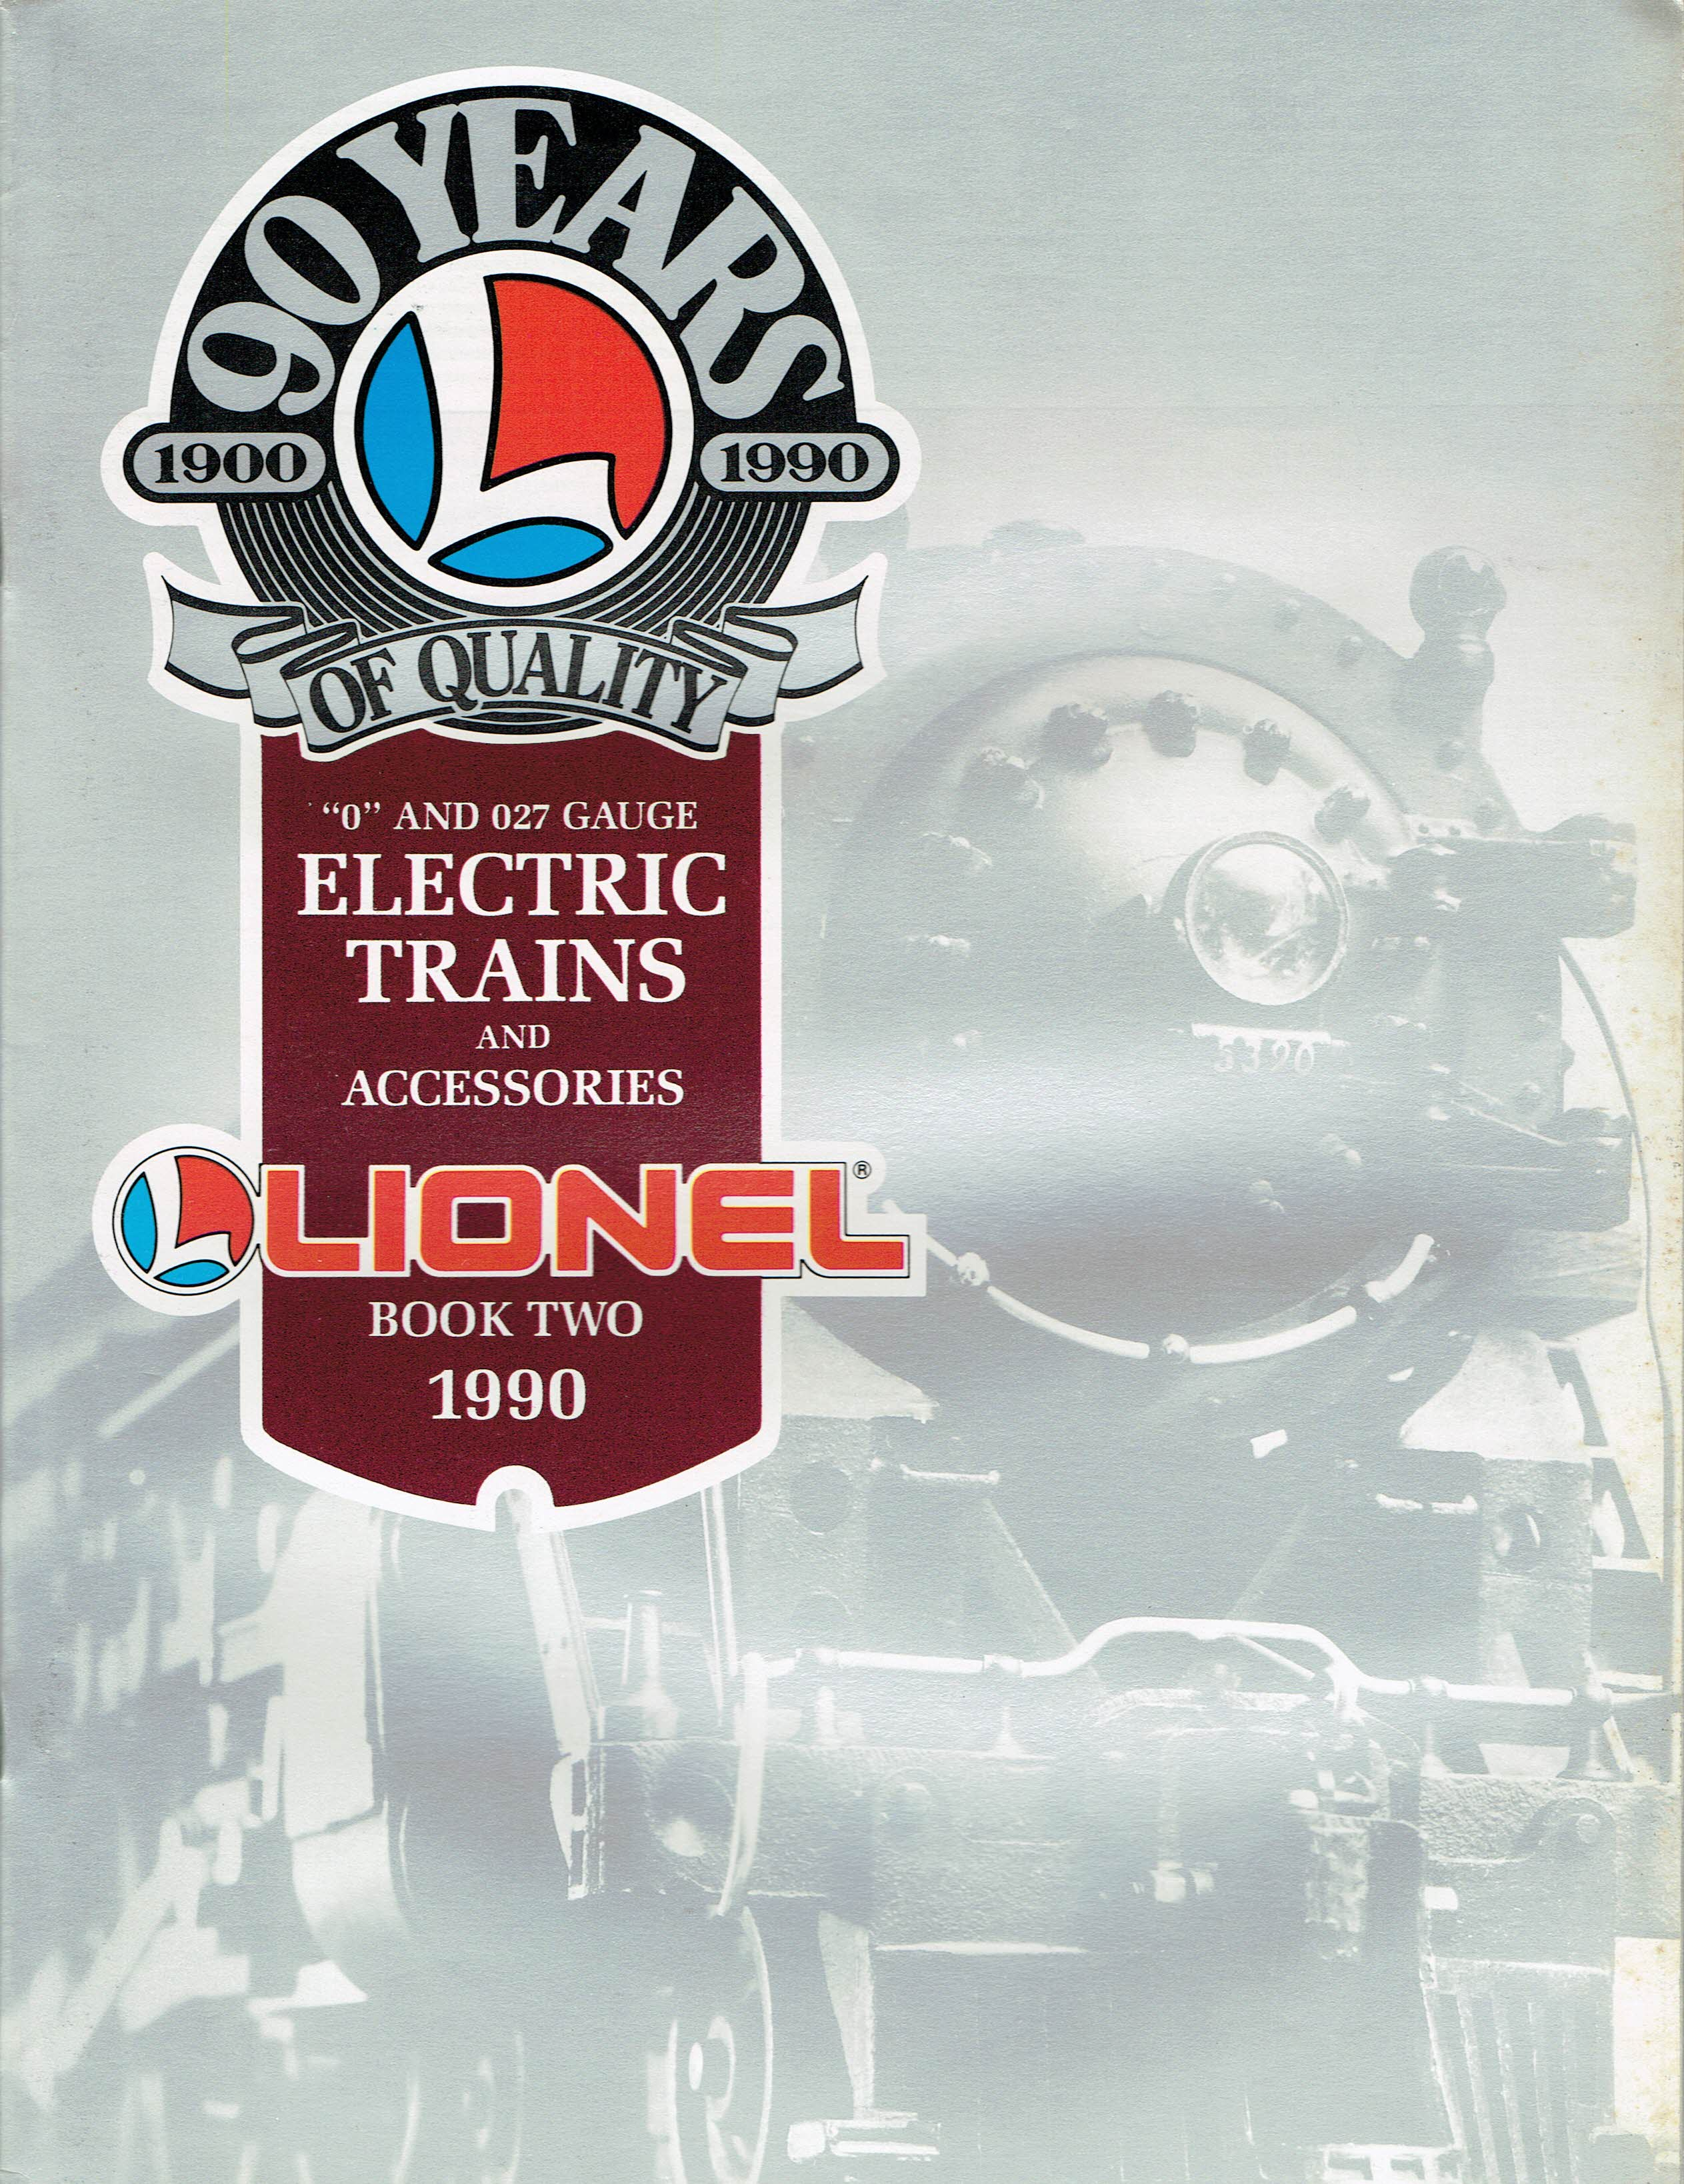 Lionel 1990 Book Two Catalog image